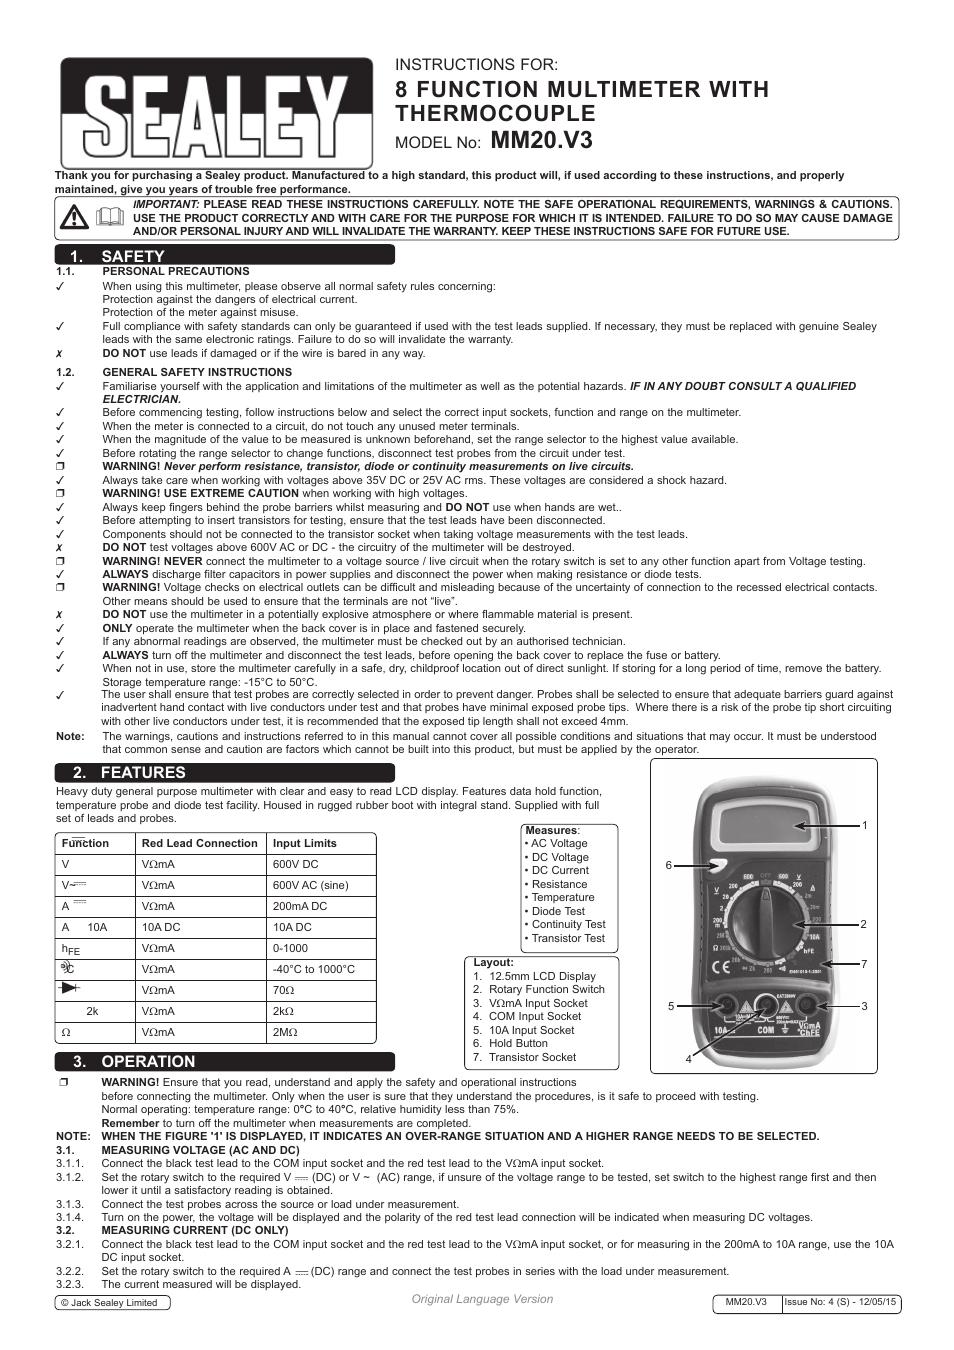 Sealey Mm20 User Manual 2 Pages